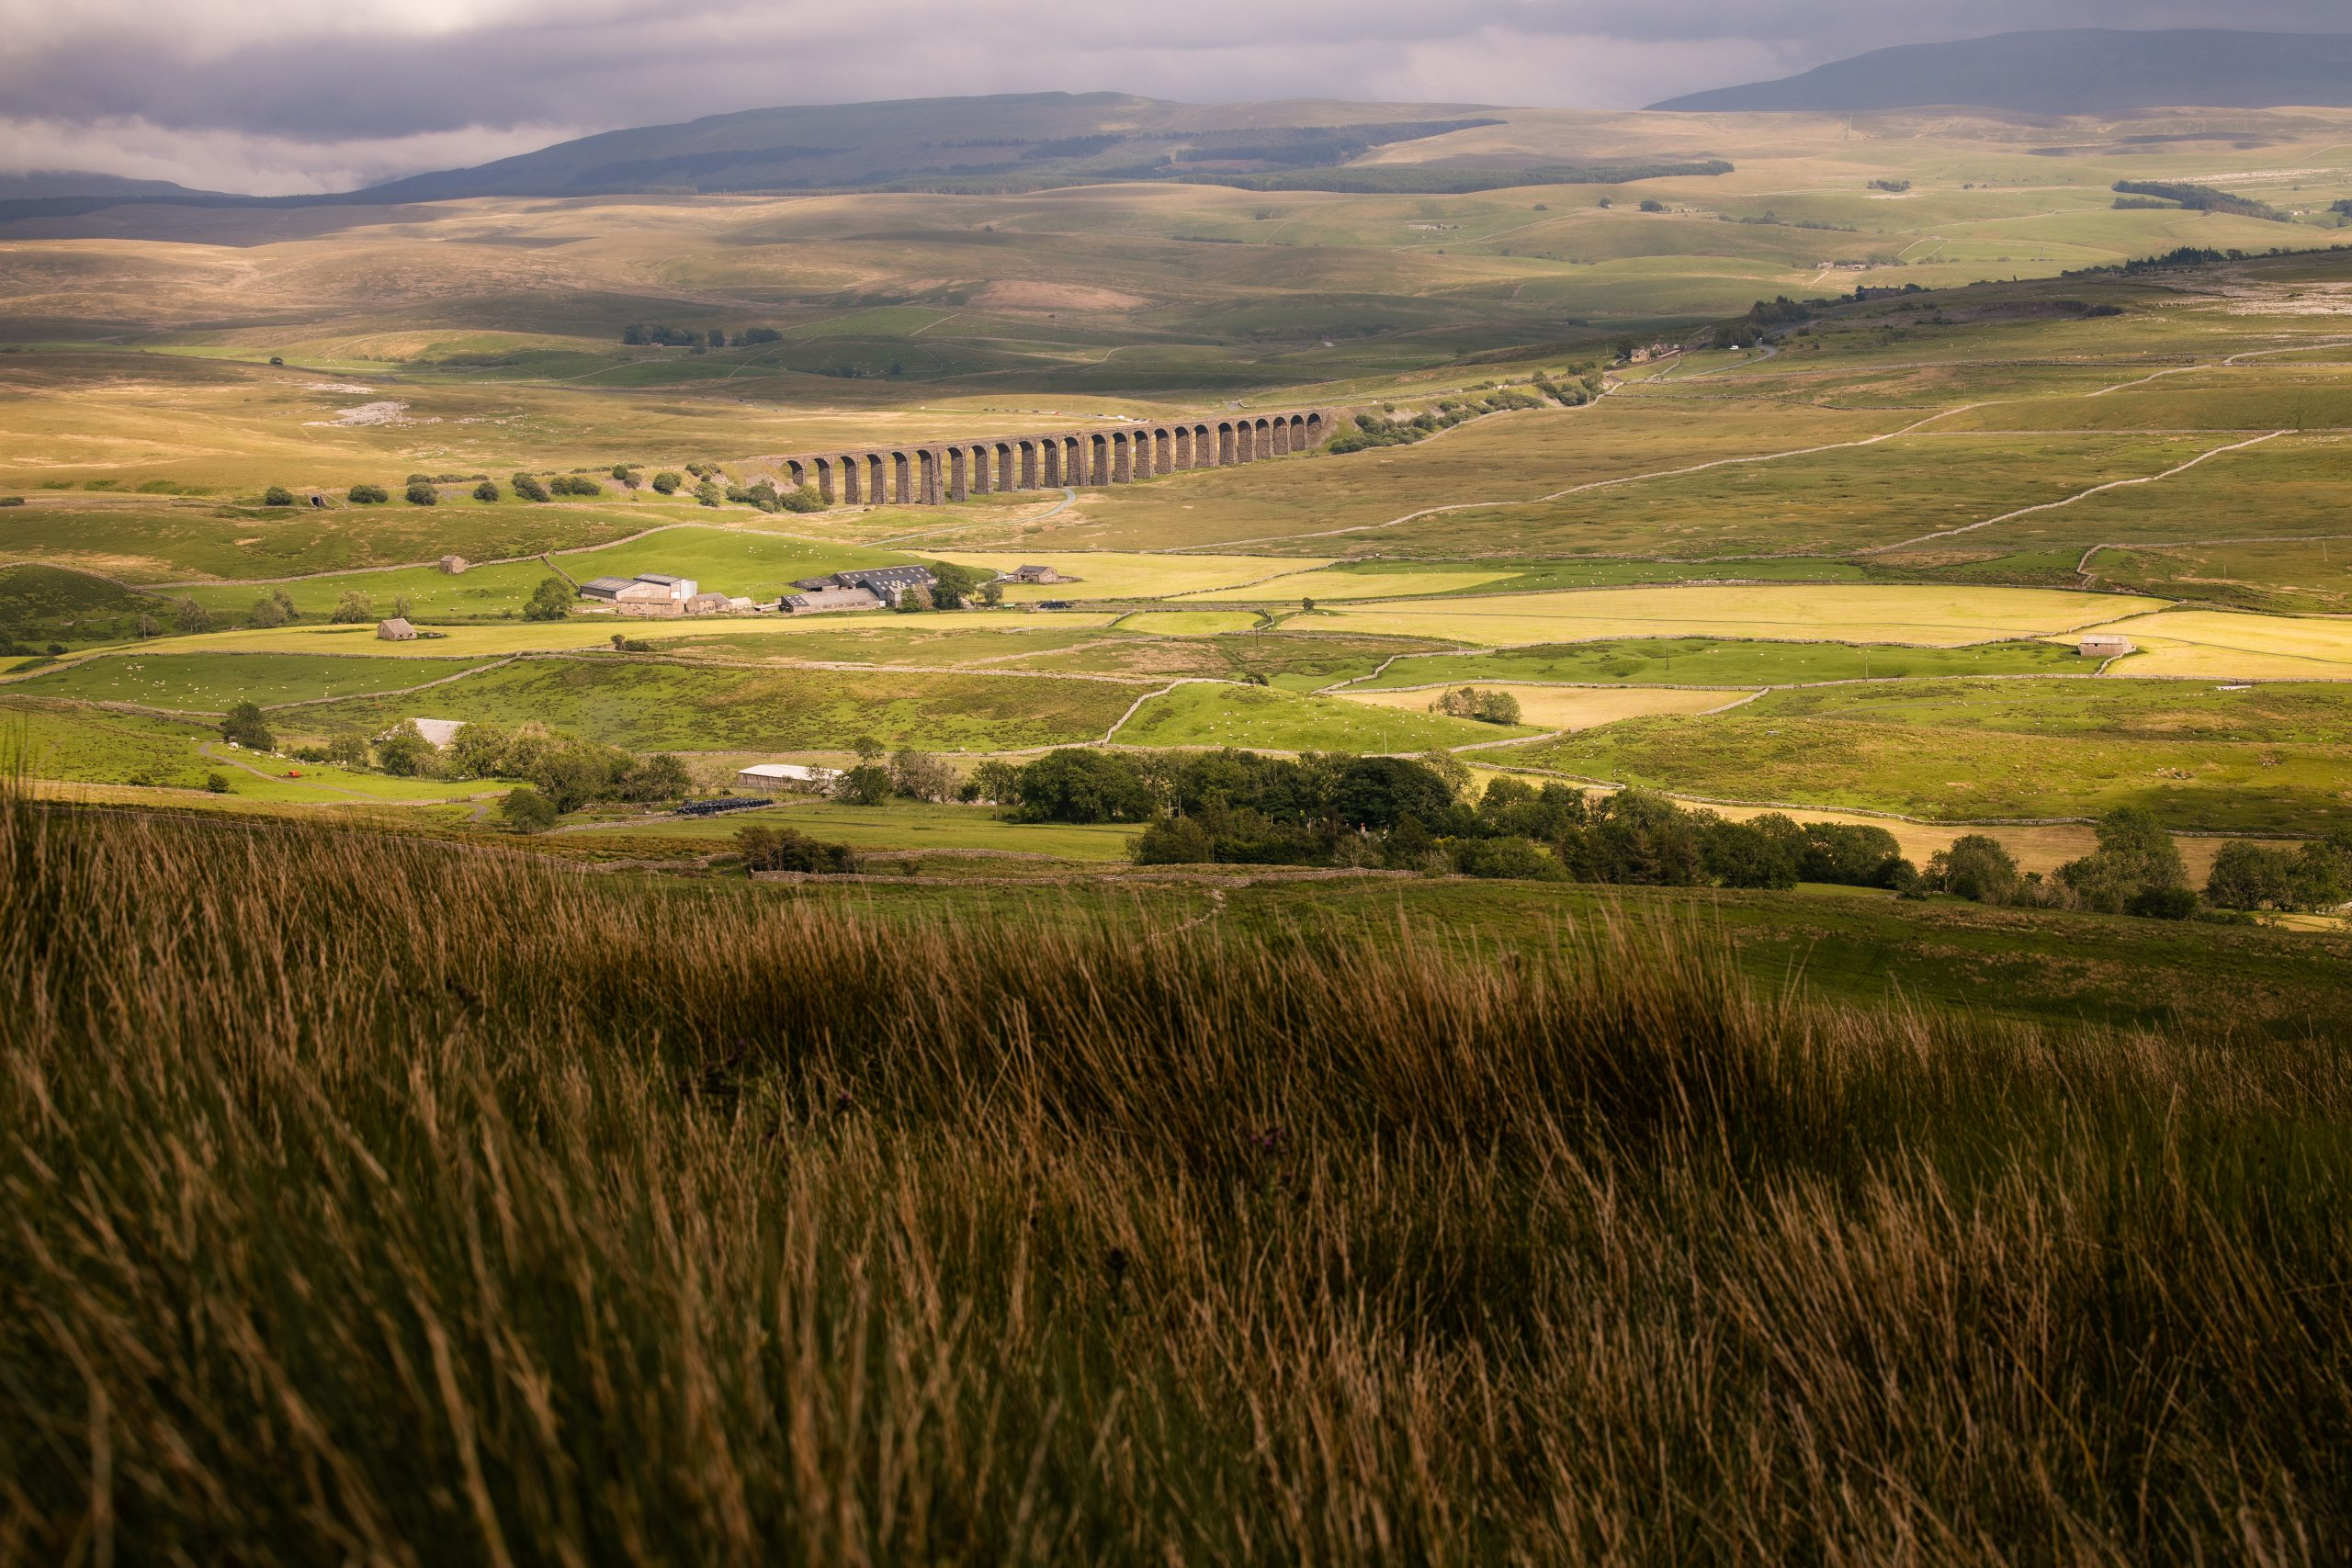 Looking down the side of Whernside towards Ribblehead Viaduct, illuminated by the late afternoon sunshine